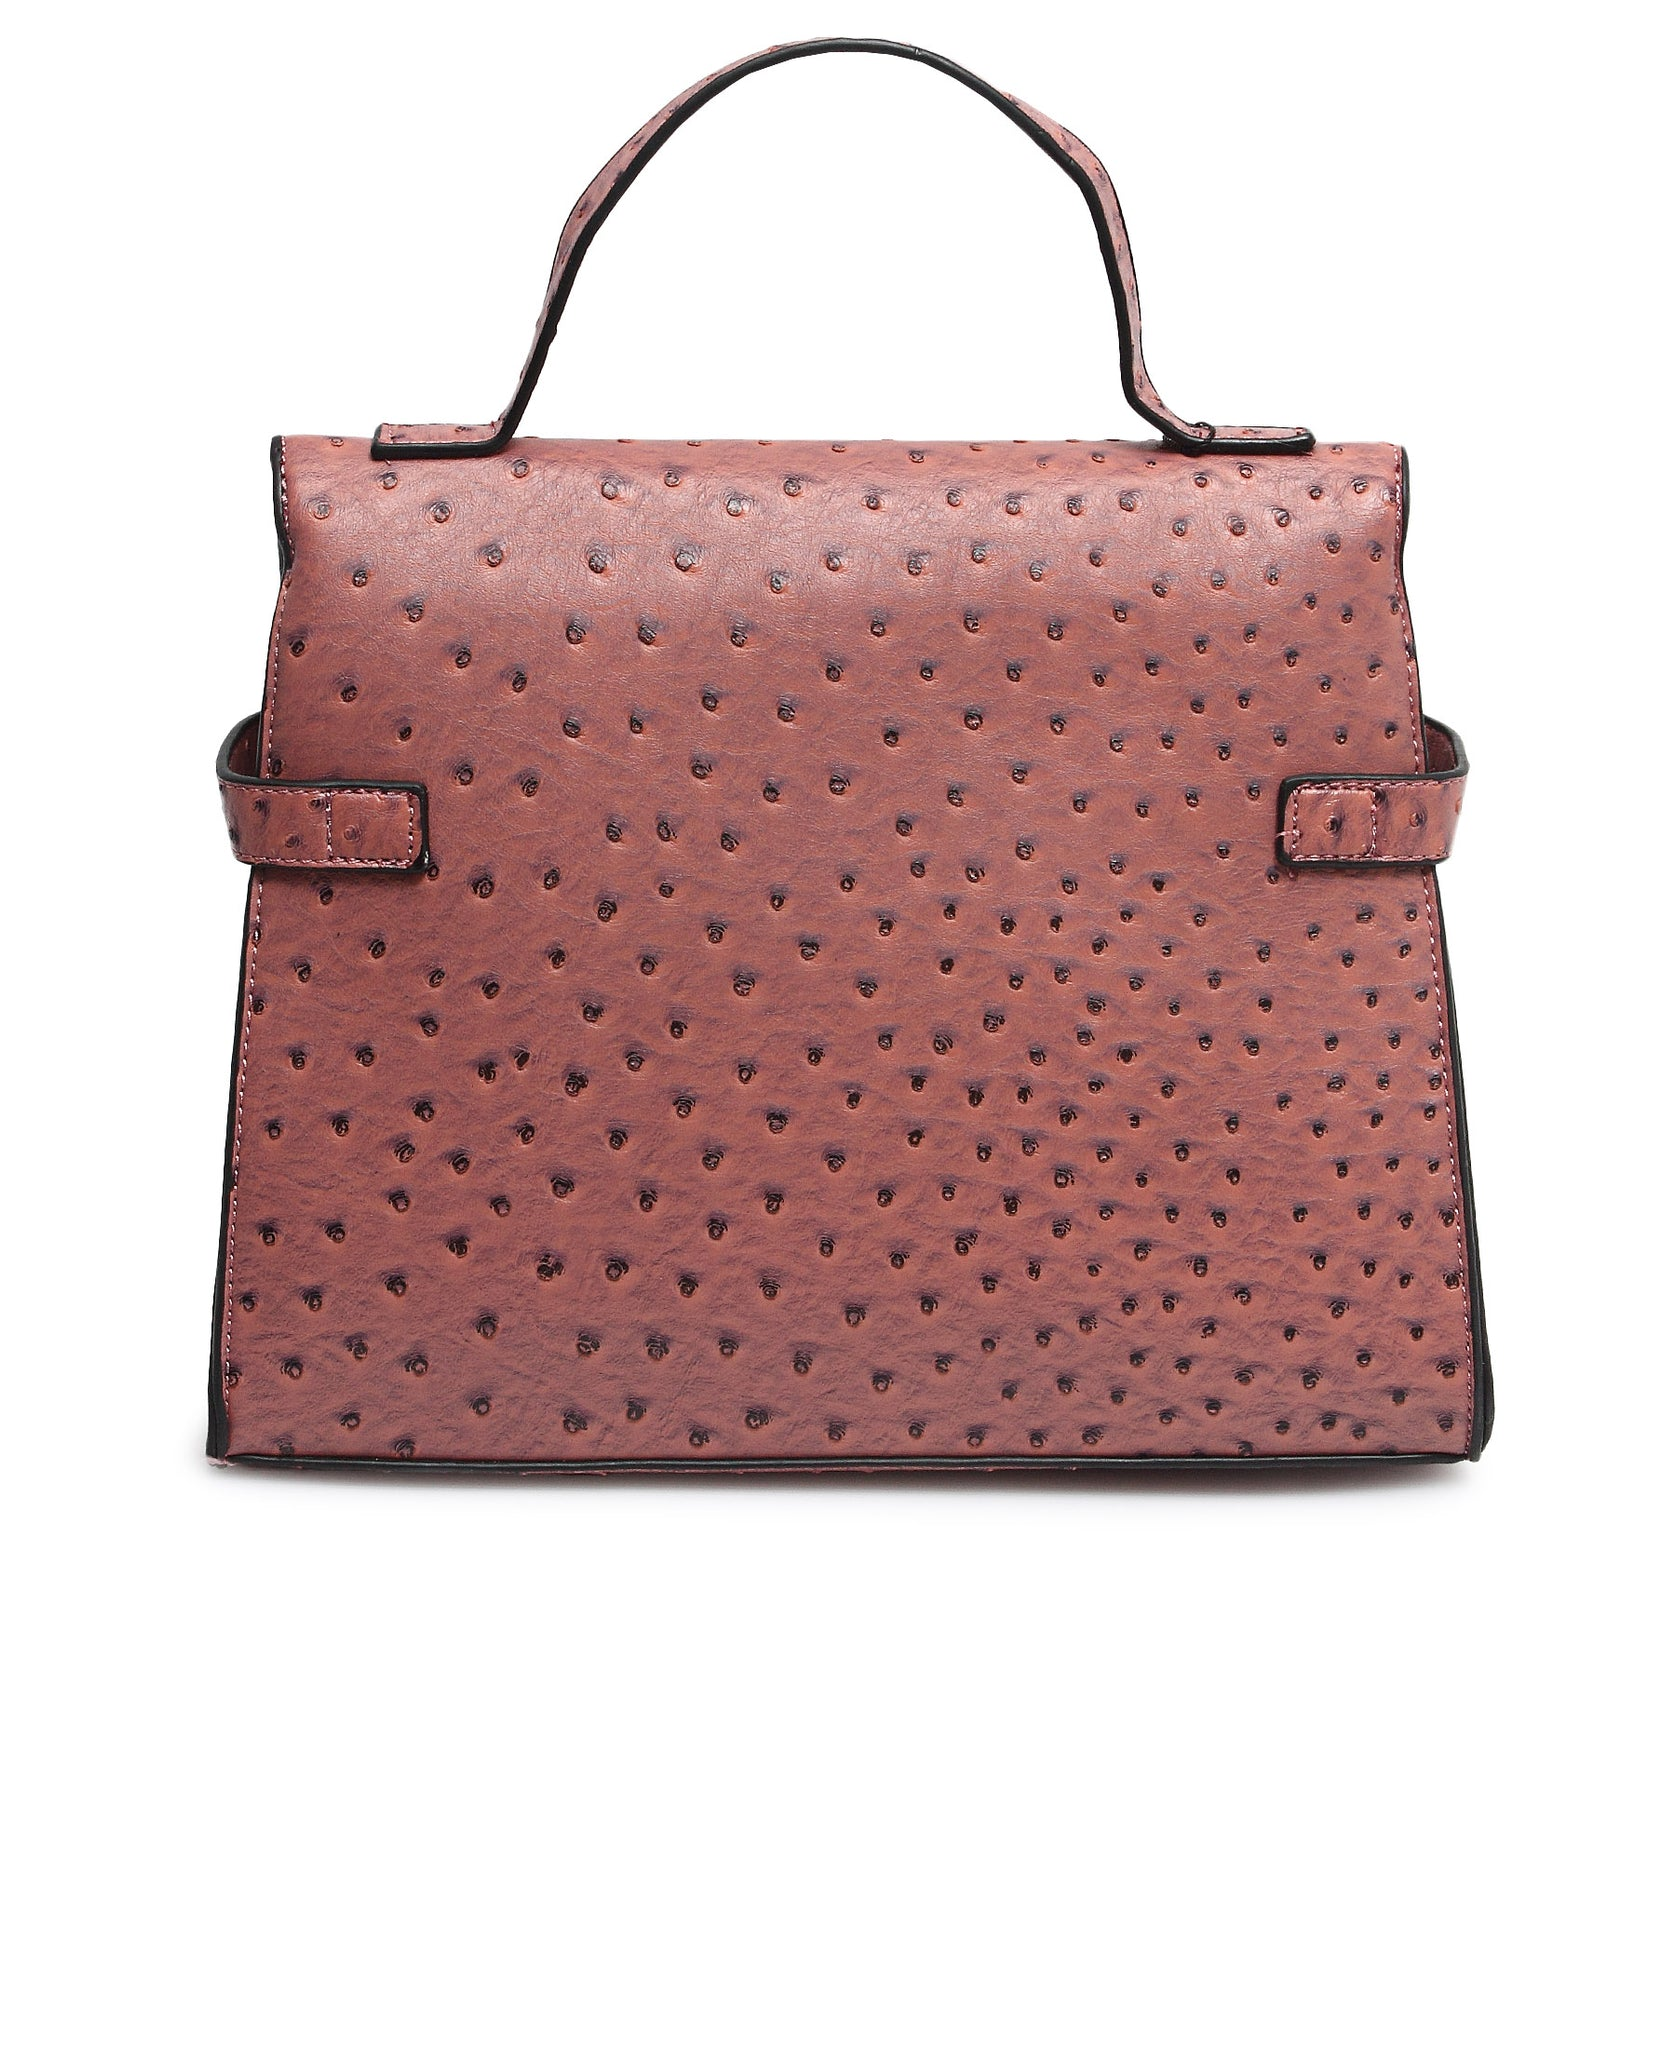 Satchel Bag - Pink